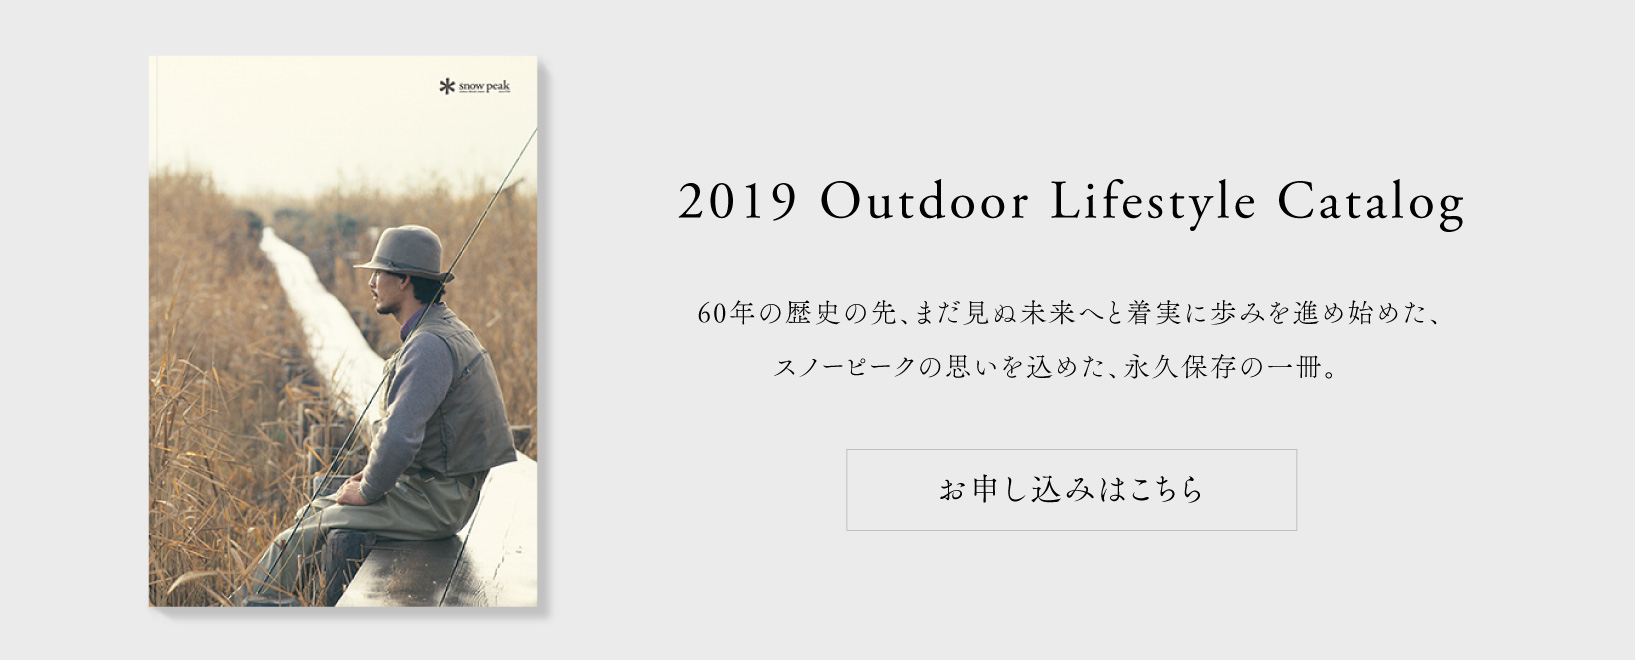 2019 Outdoor Lifestyle Catalog